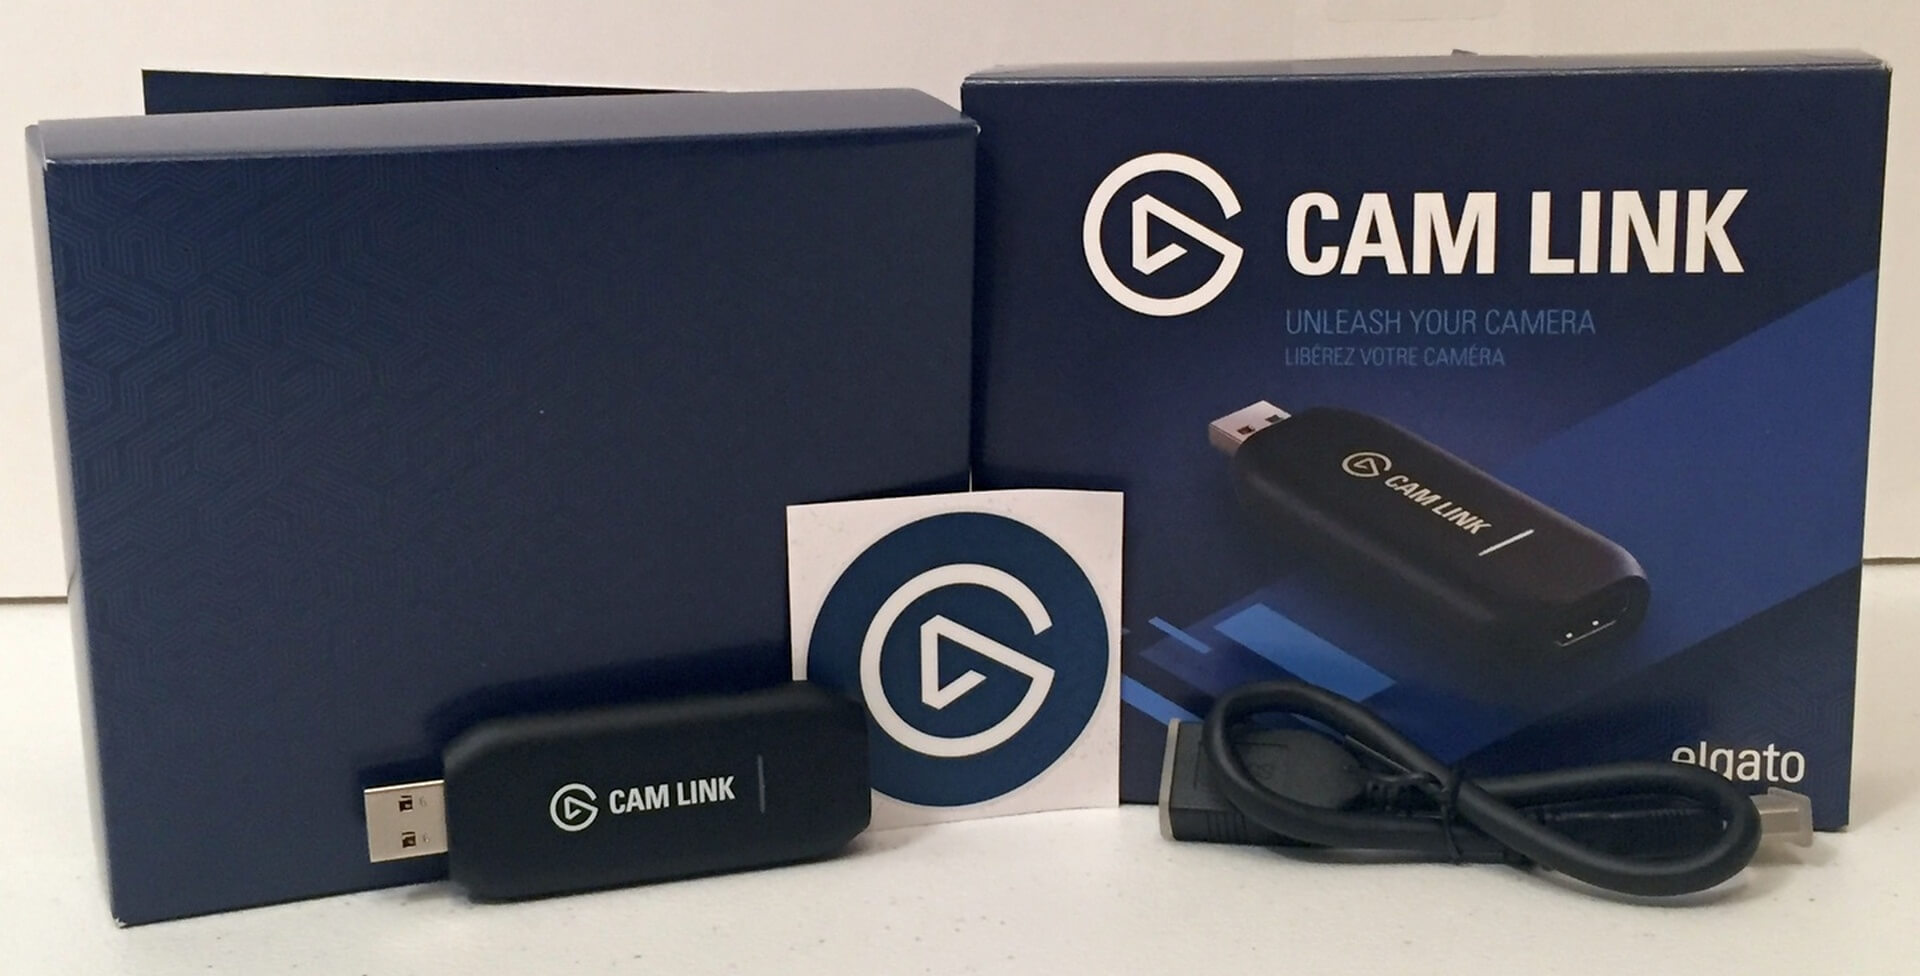 Review: Elgato Cam Link HDMI Capture Device